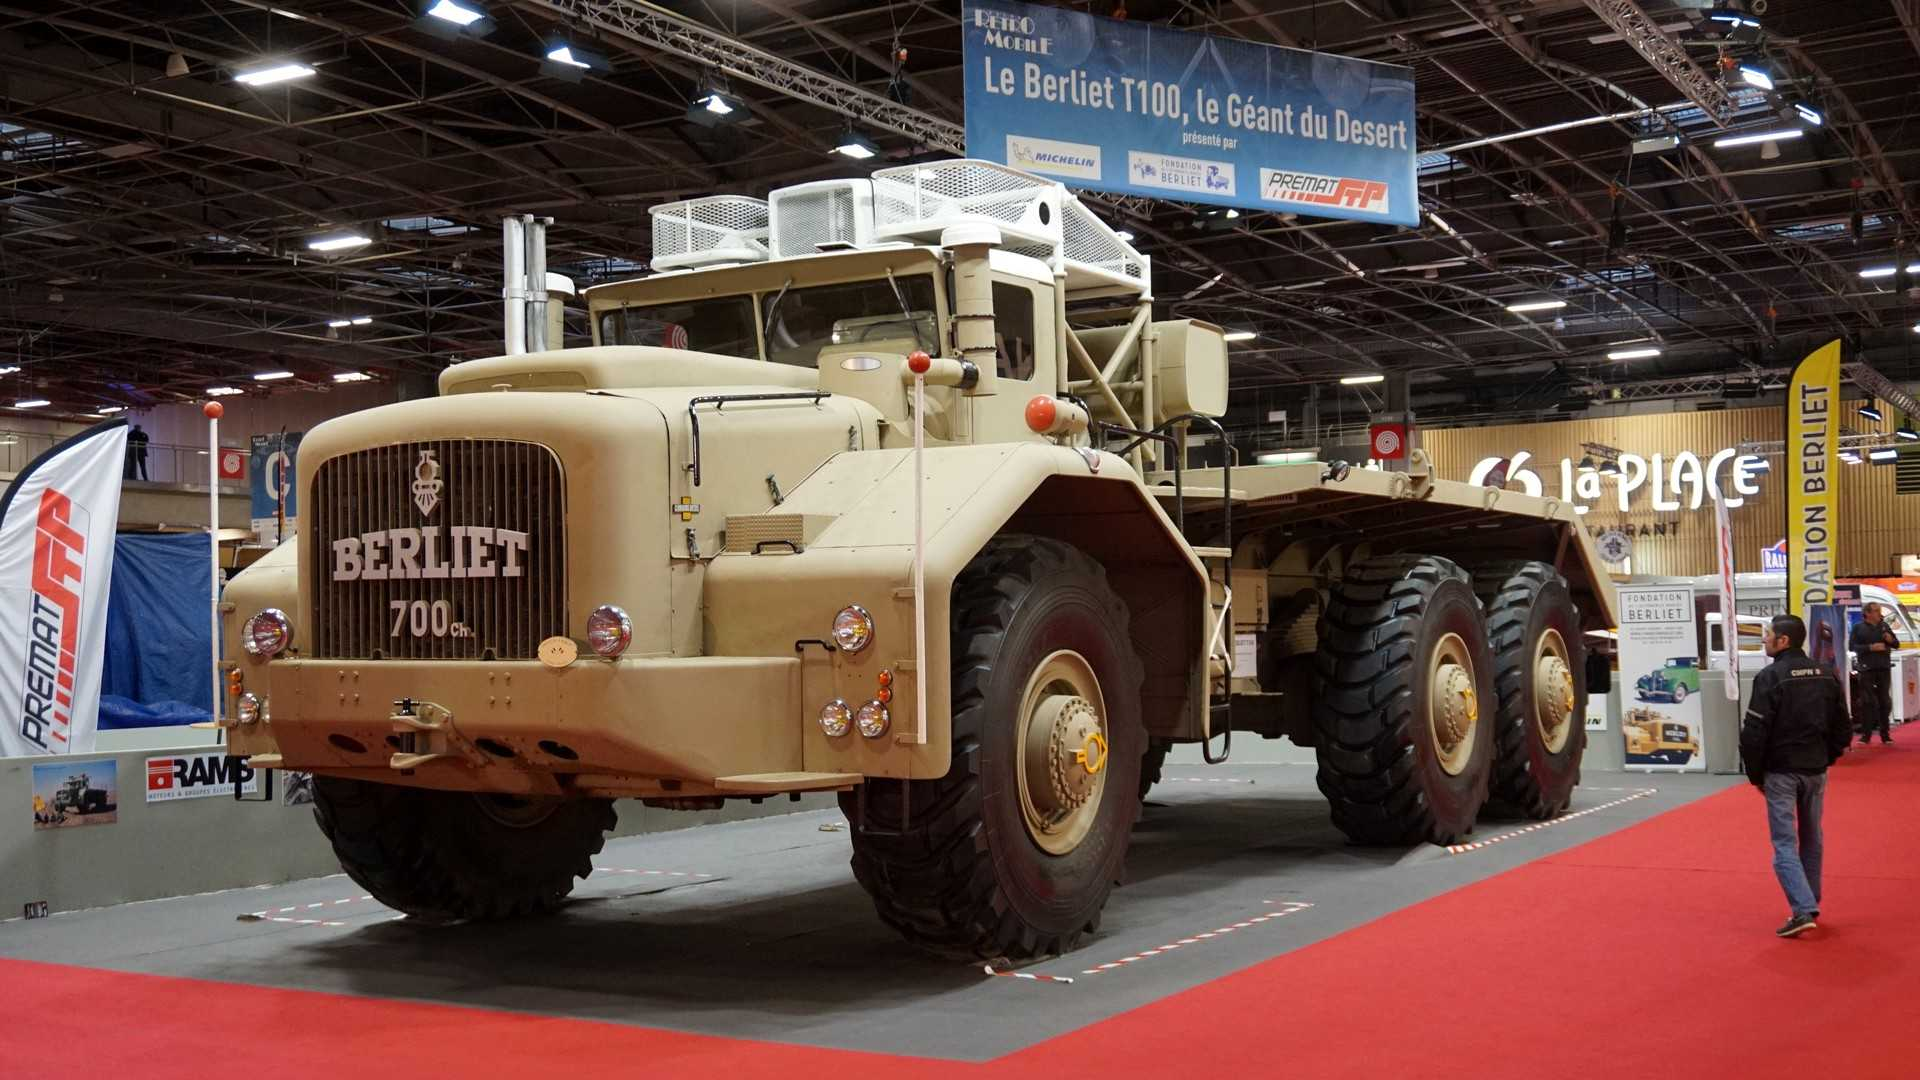 Meet Berliet T100, the largest and strongest tow truck from the faraway 1950s